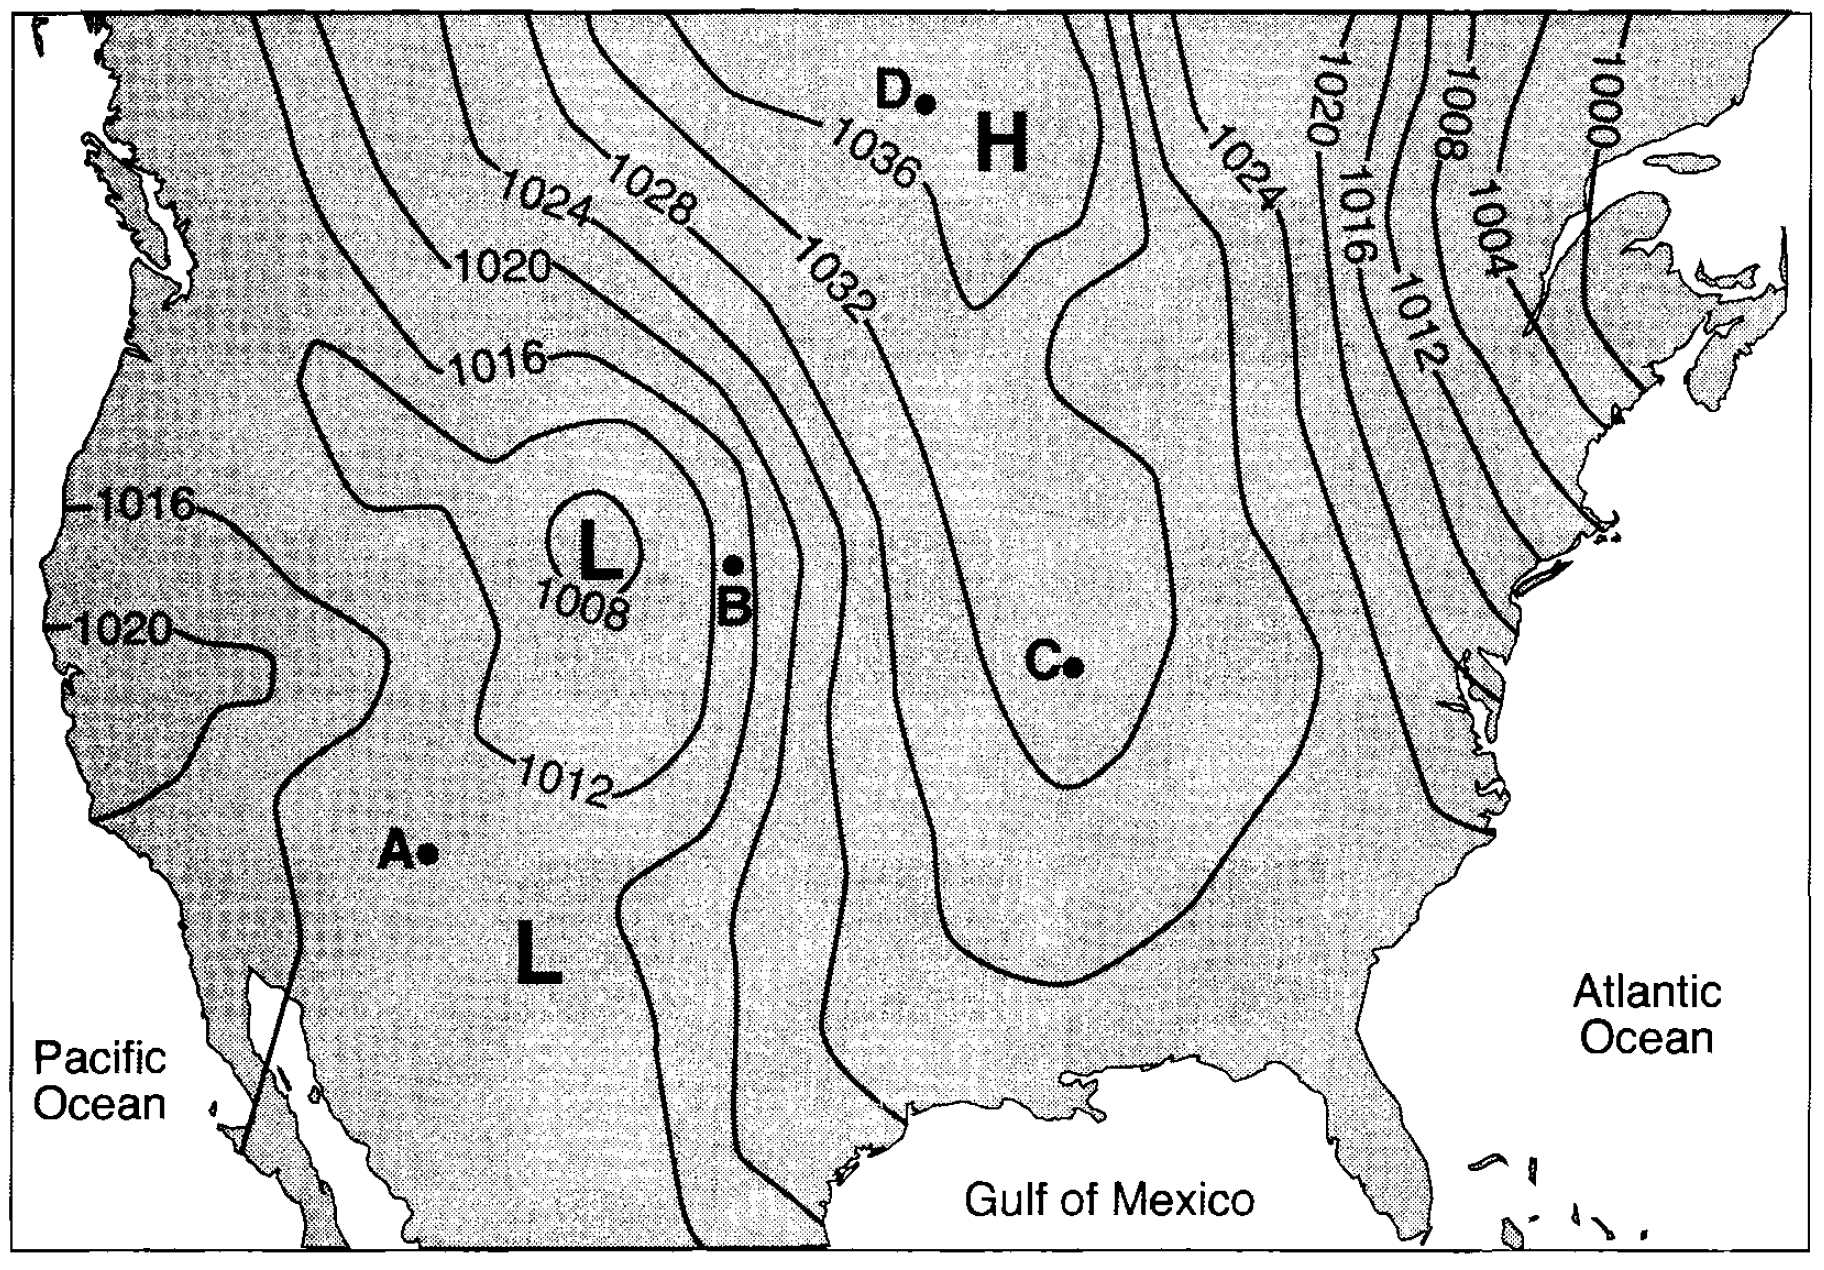 65. Base your answer to the following question on the weather map below, which shows a storm system centered near the Great Lakes. Letters A through D represent weather stations shown on the map.